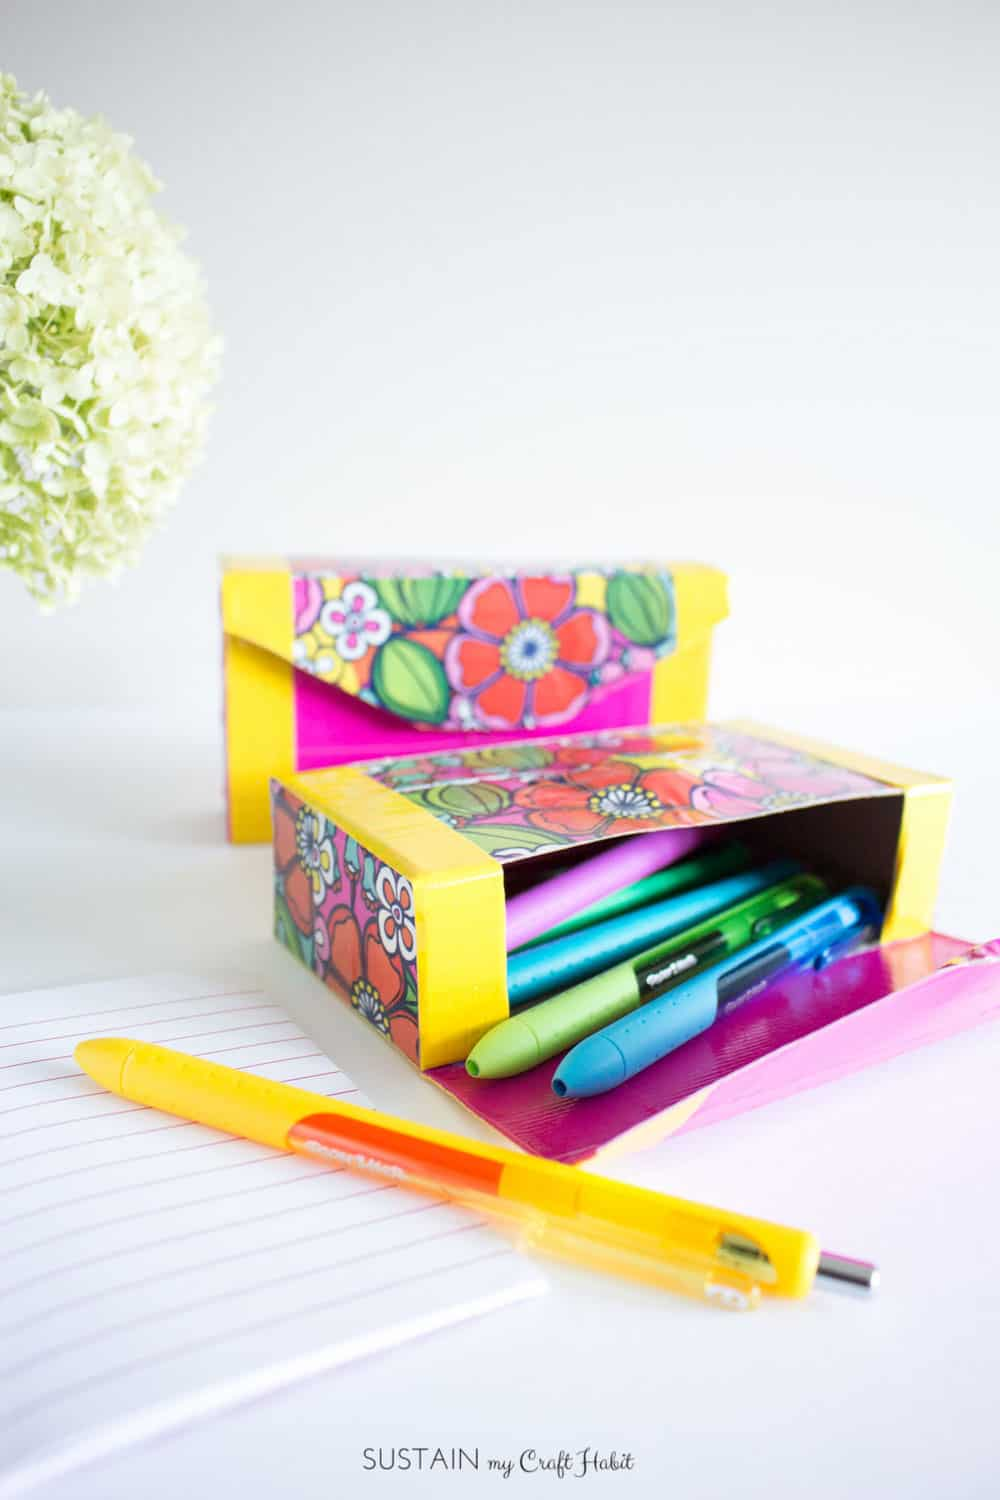 How to Make an Upcycled Pencil Case Using Duck Tape